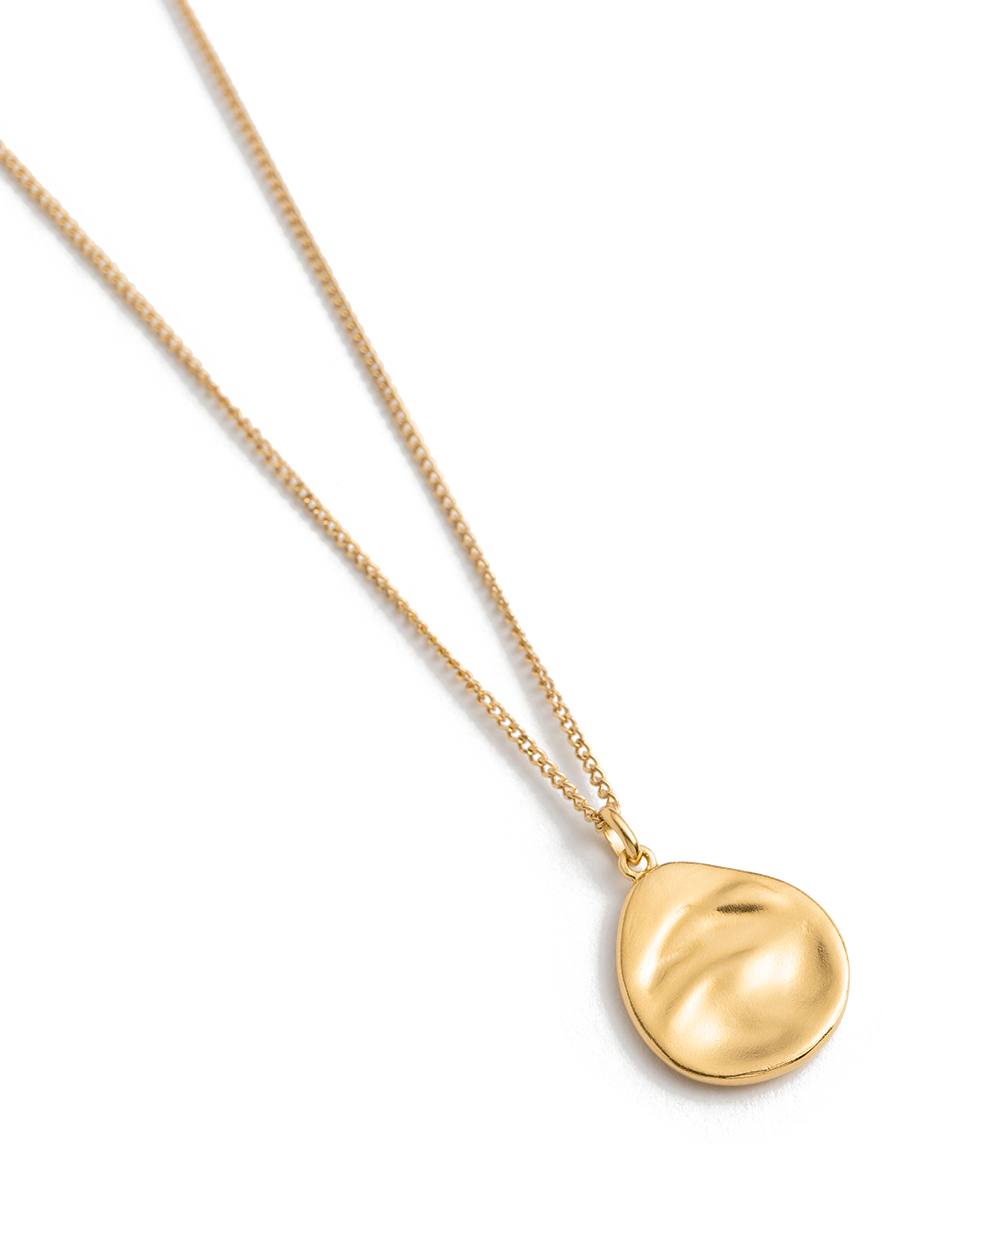 TIDAL TEARDROP NECKLACE (18K-GOLD-VERMEIL) 02